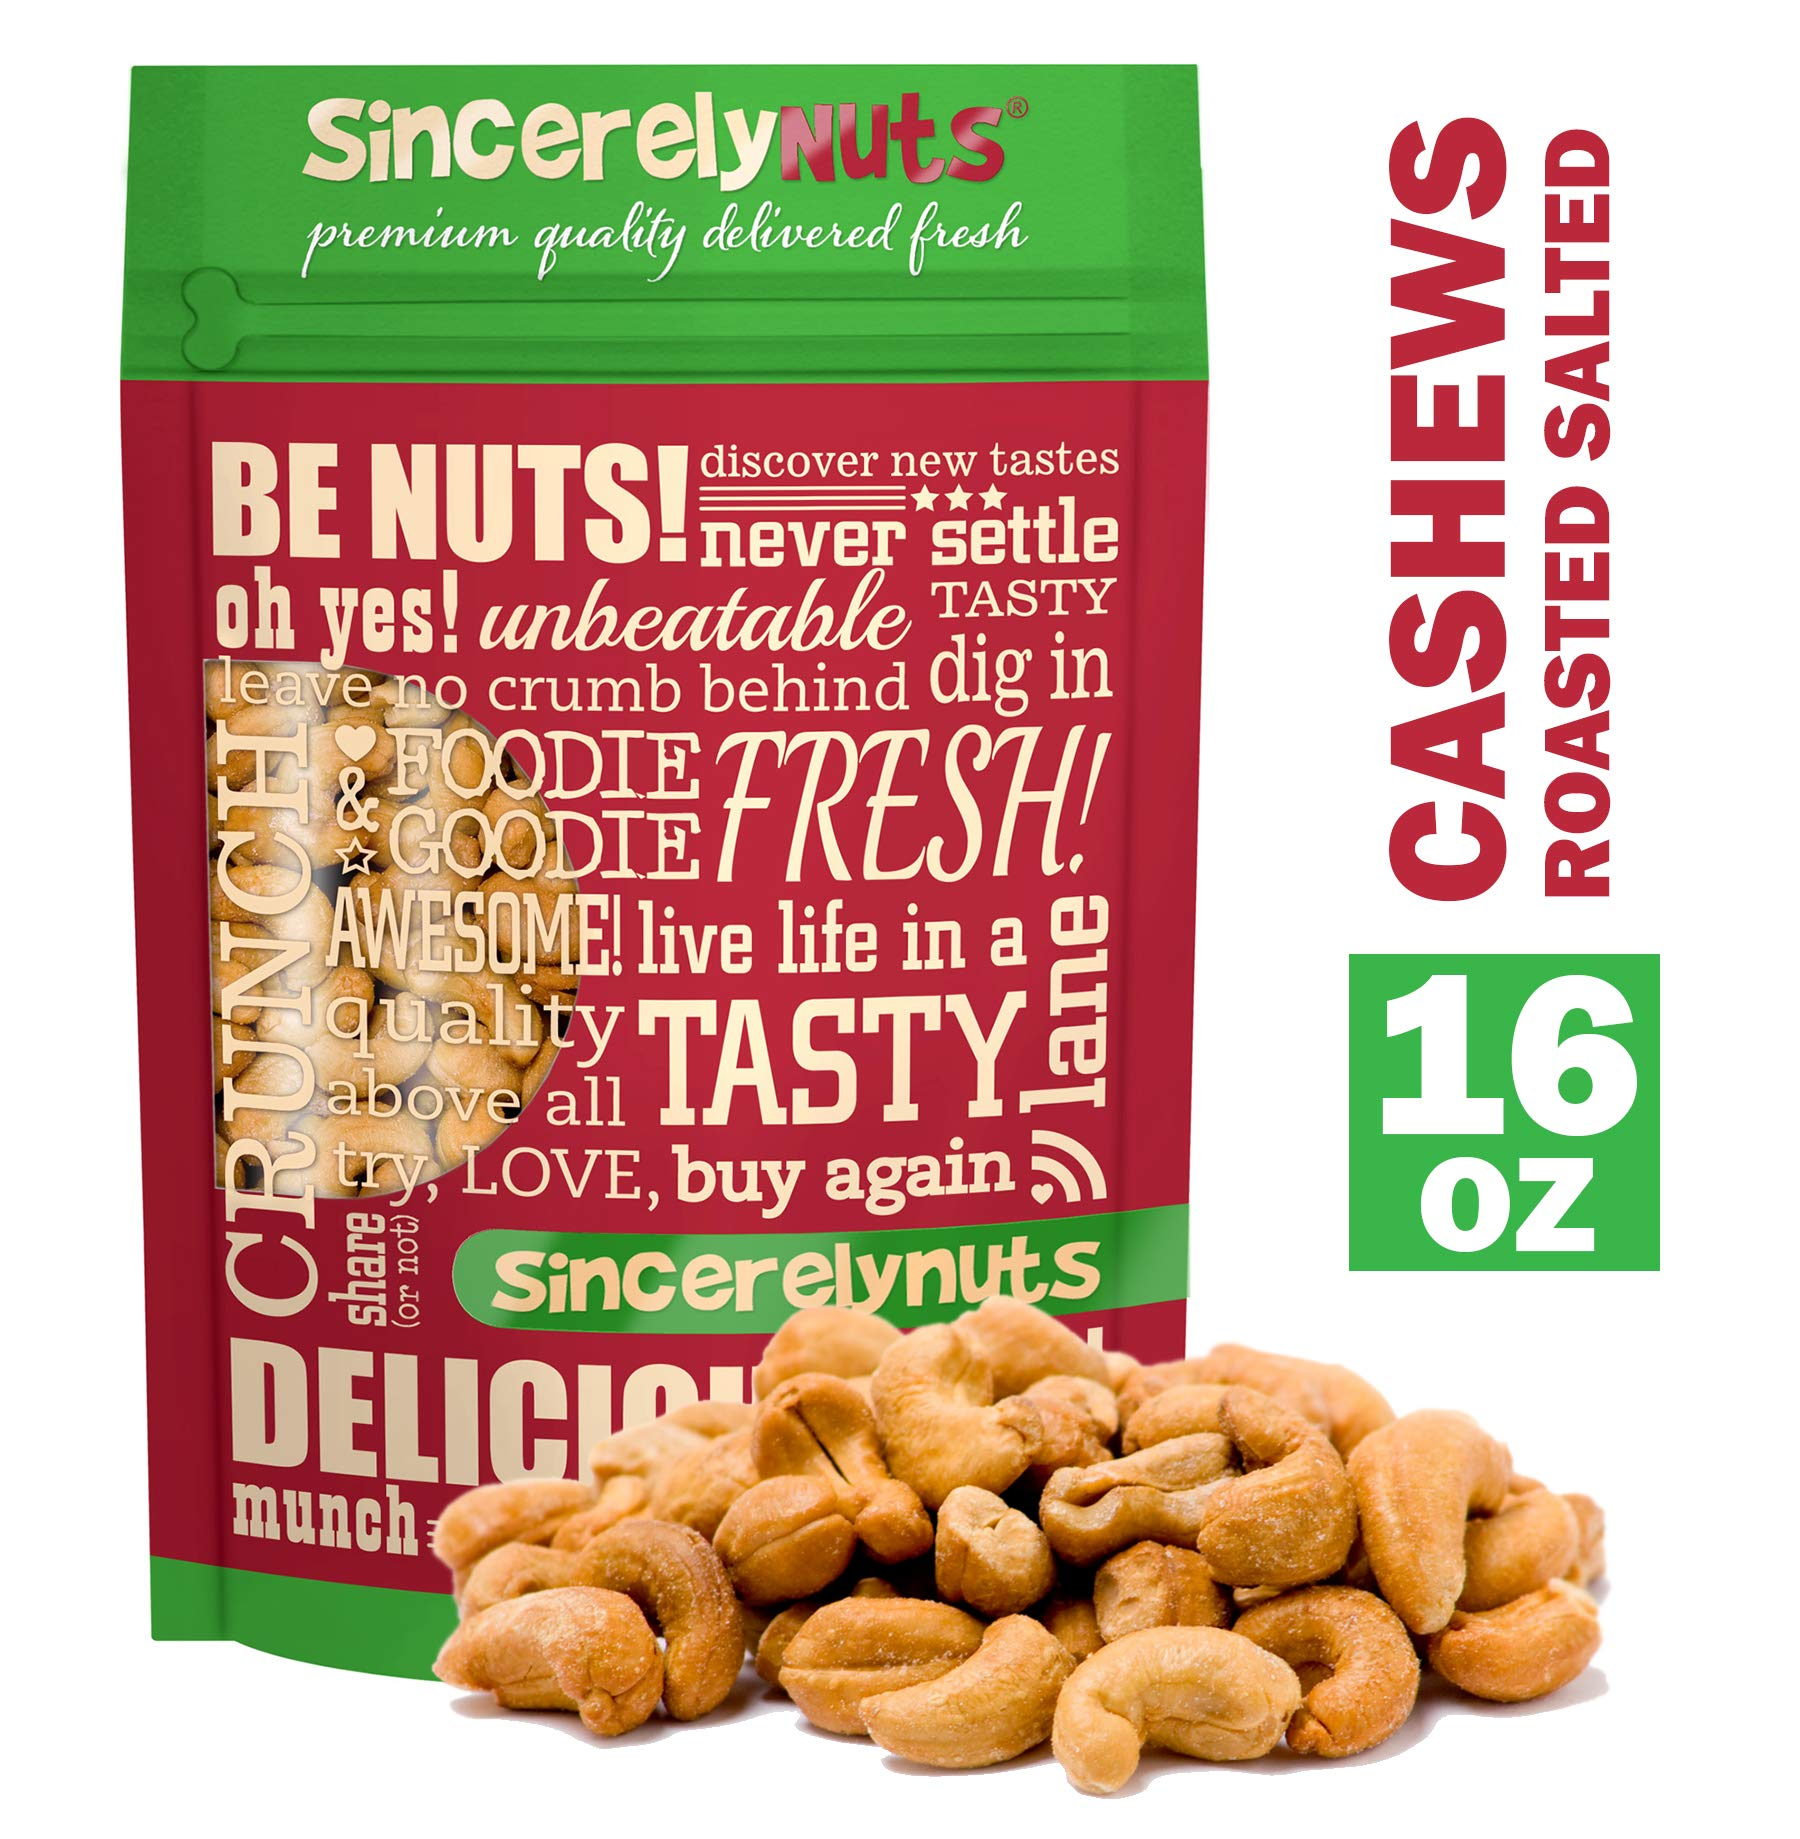 Sincerely Nuts - Whole Cashews Roasted and Salted | One Lb. Bag | Deluxe Kosher Snack Food | Healthy Source of Protein, Vitamin & Mineral Nutritional Content | Gourmet Quality Vegan Cashew Nut